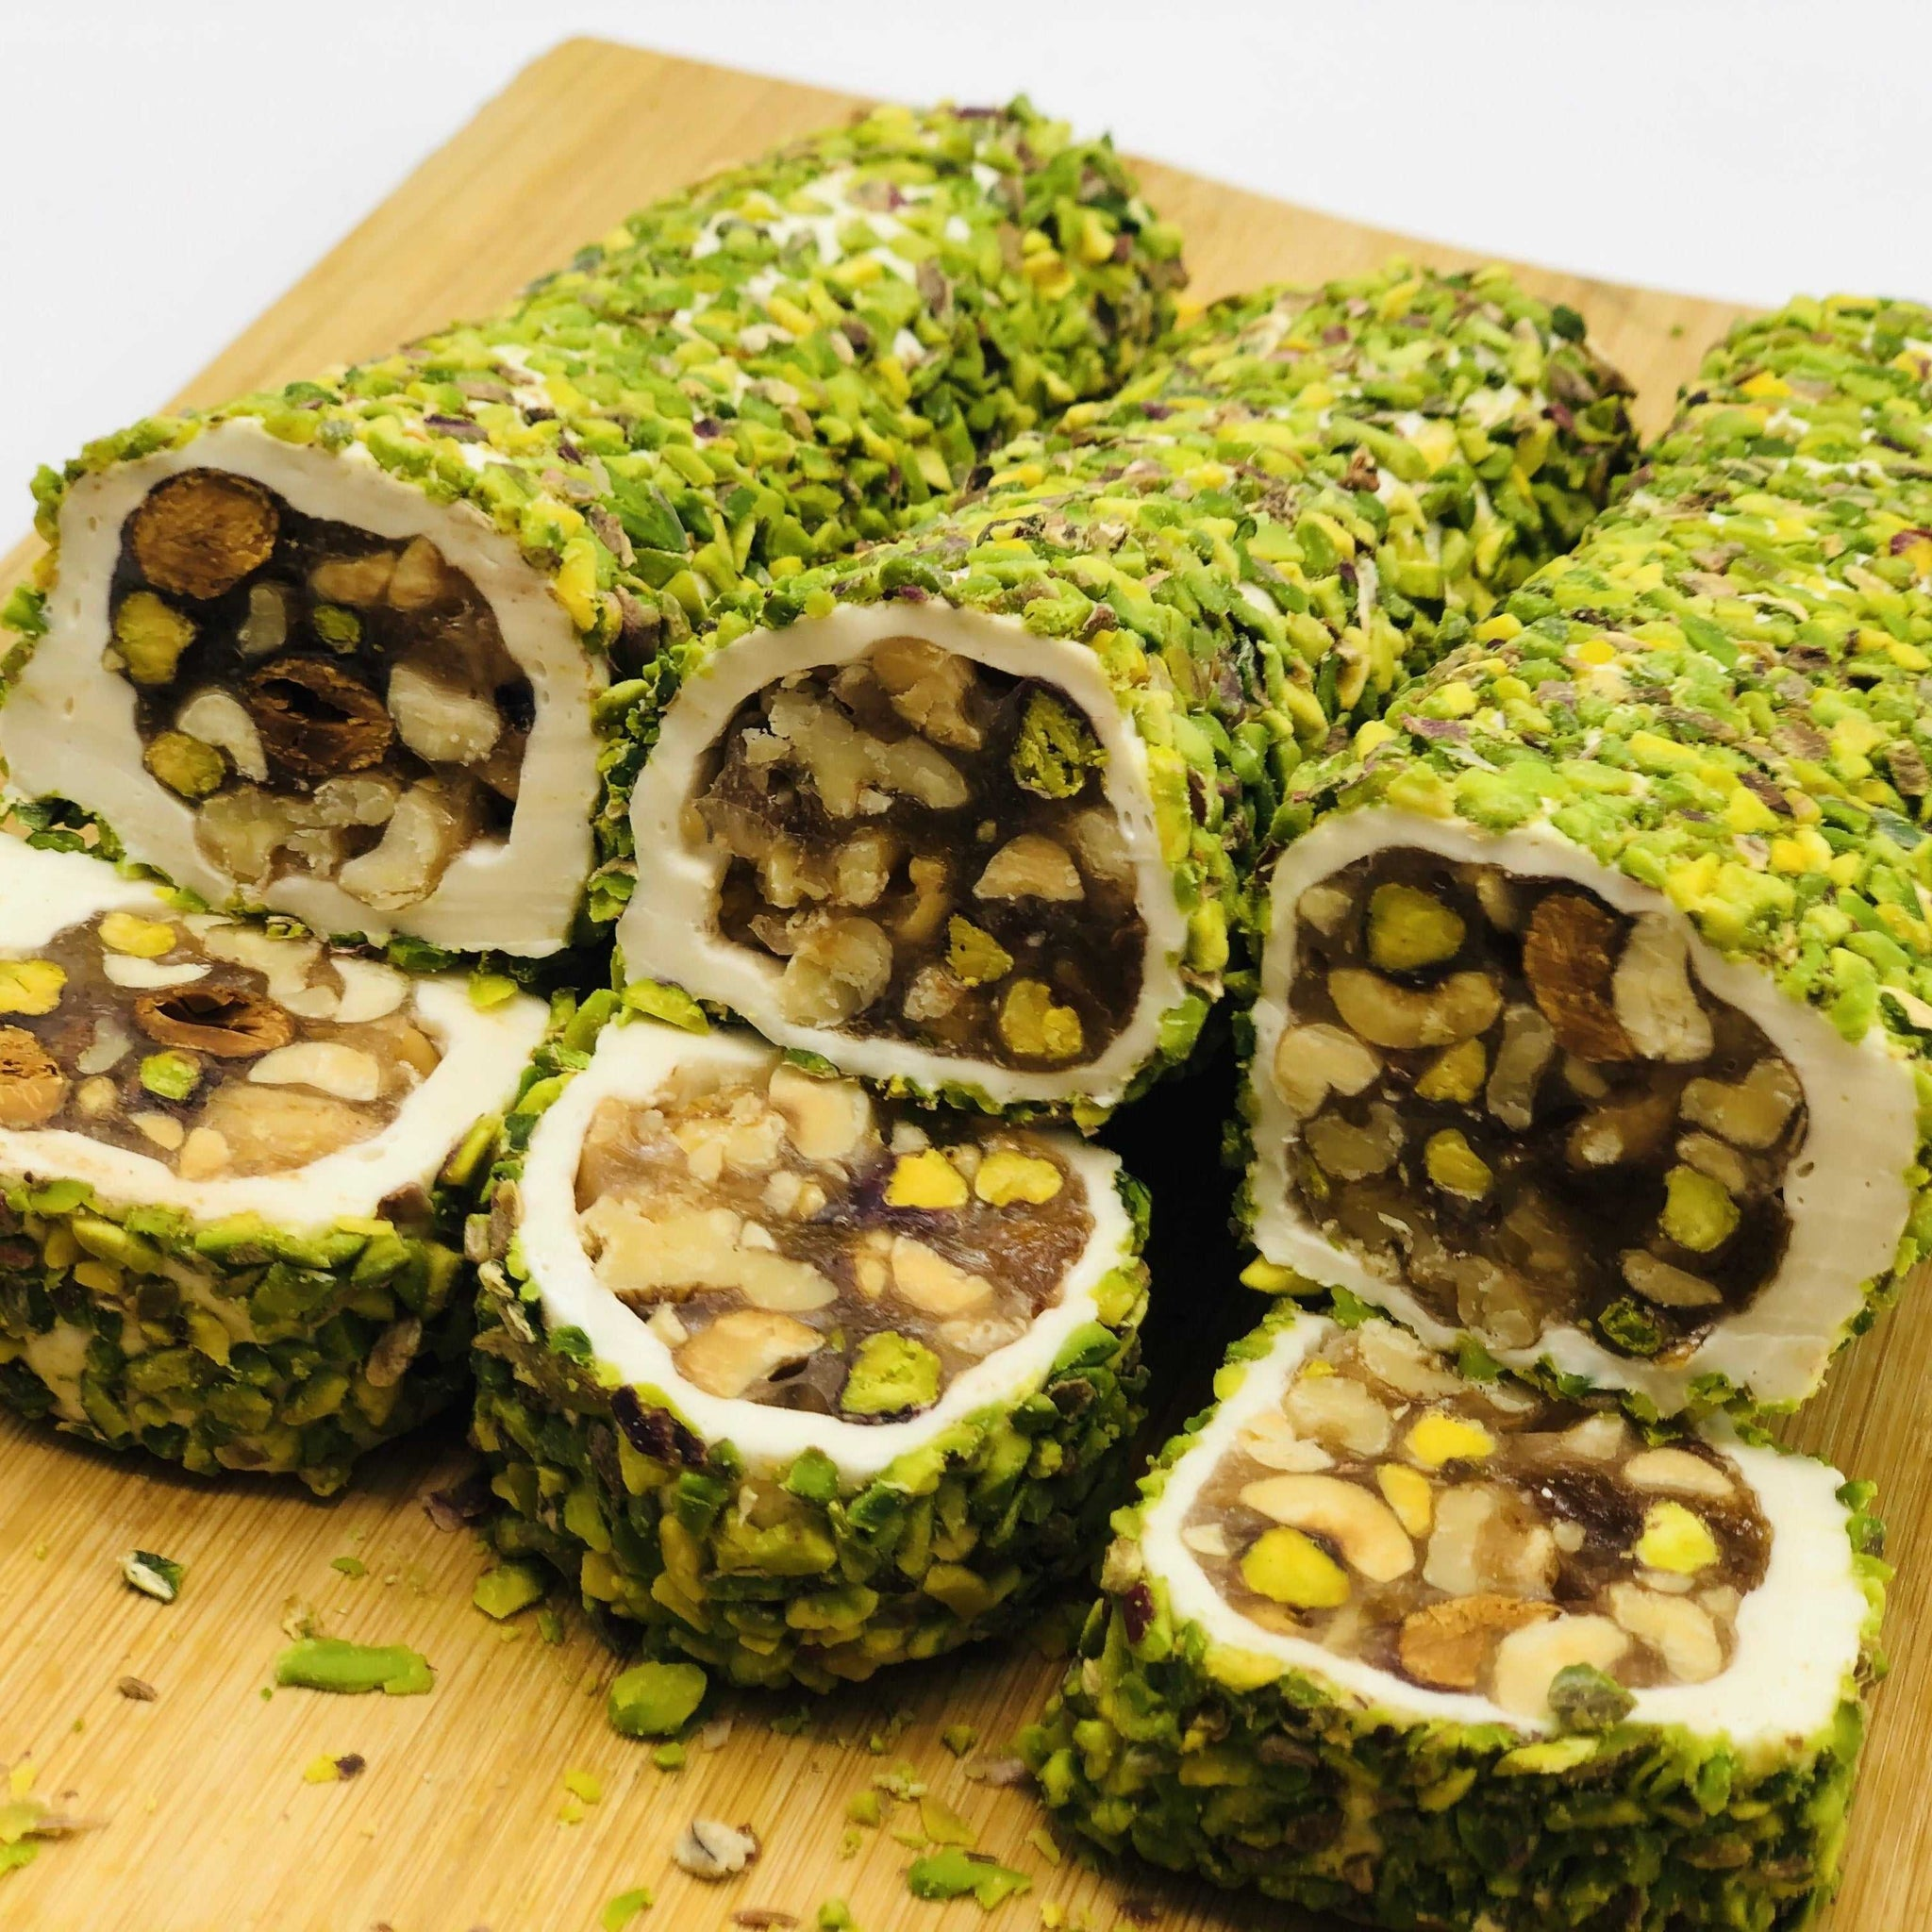 Turkish Delight - Honey, Milk and Mixed Nuts covered in Sliced Pistachio